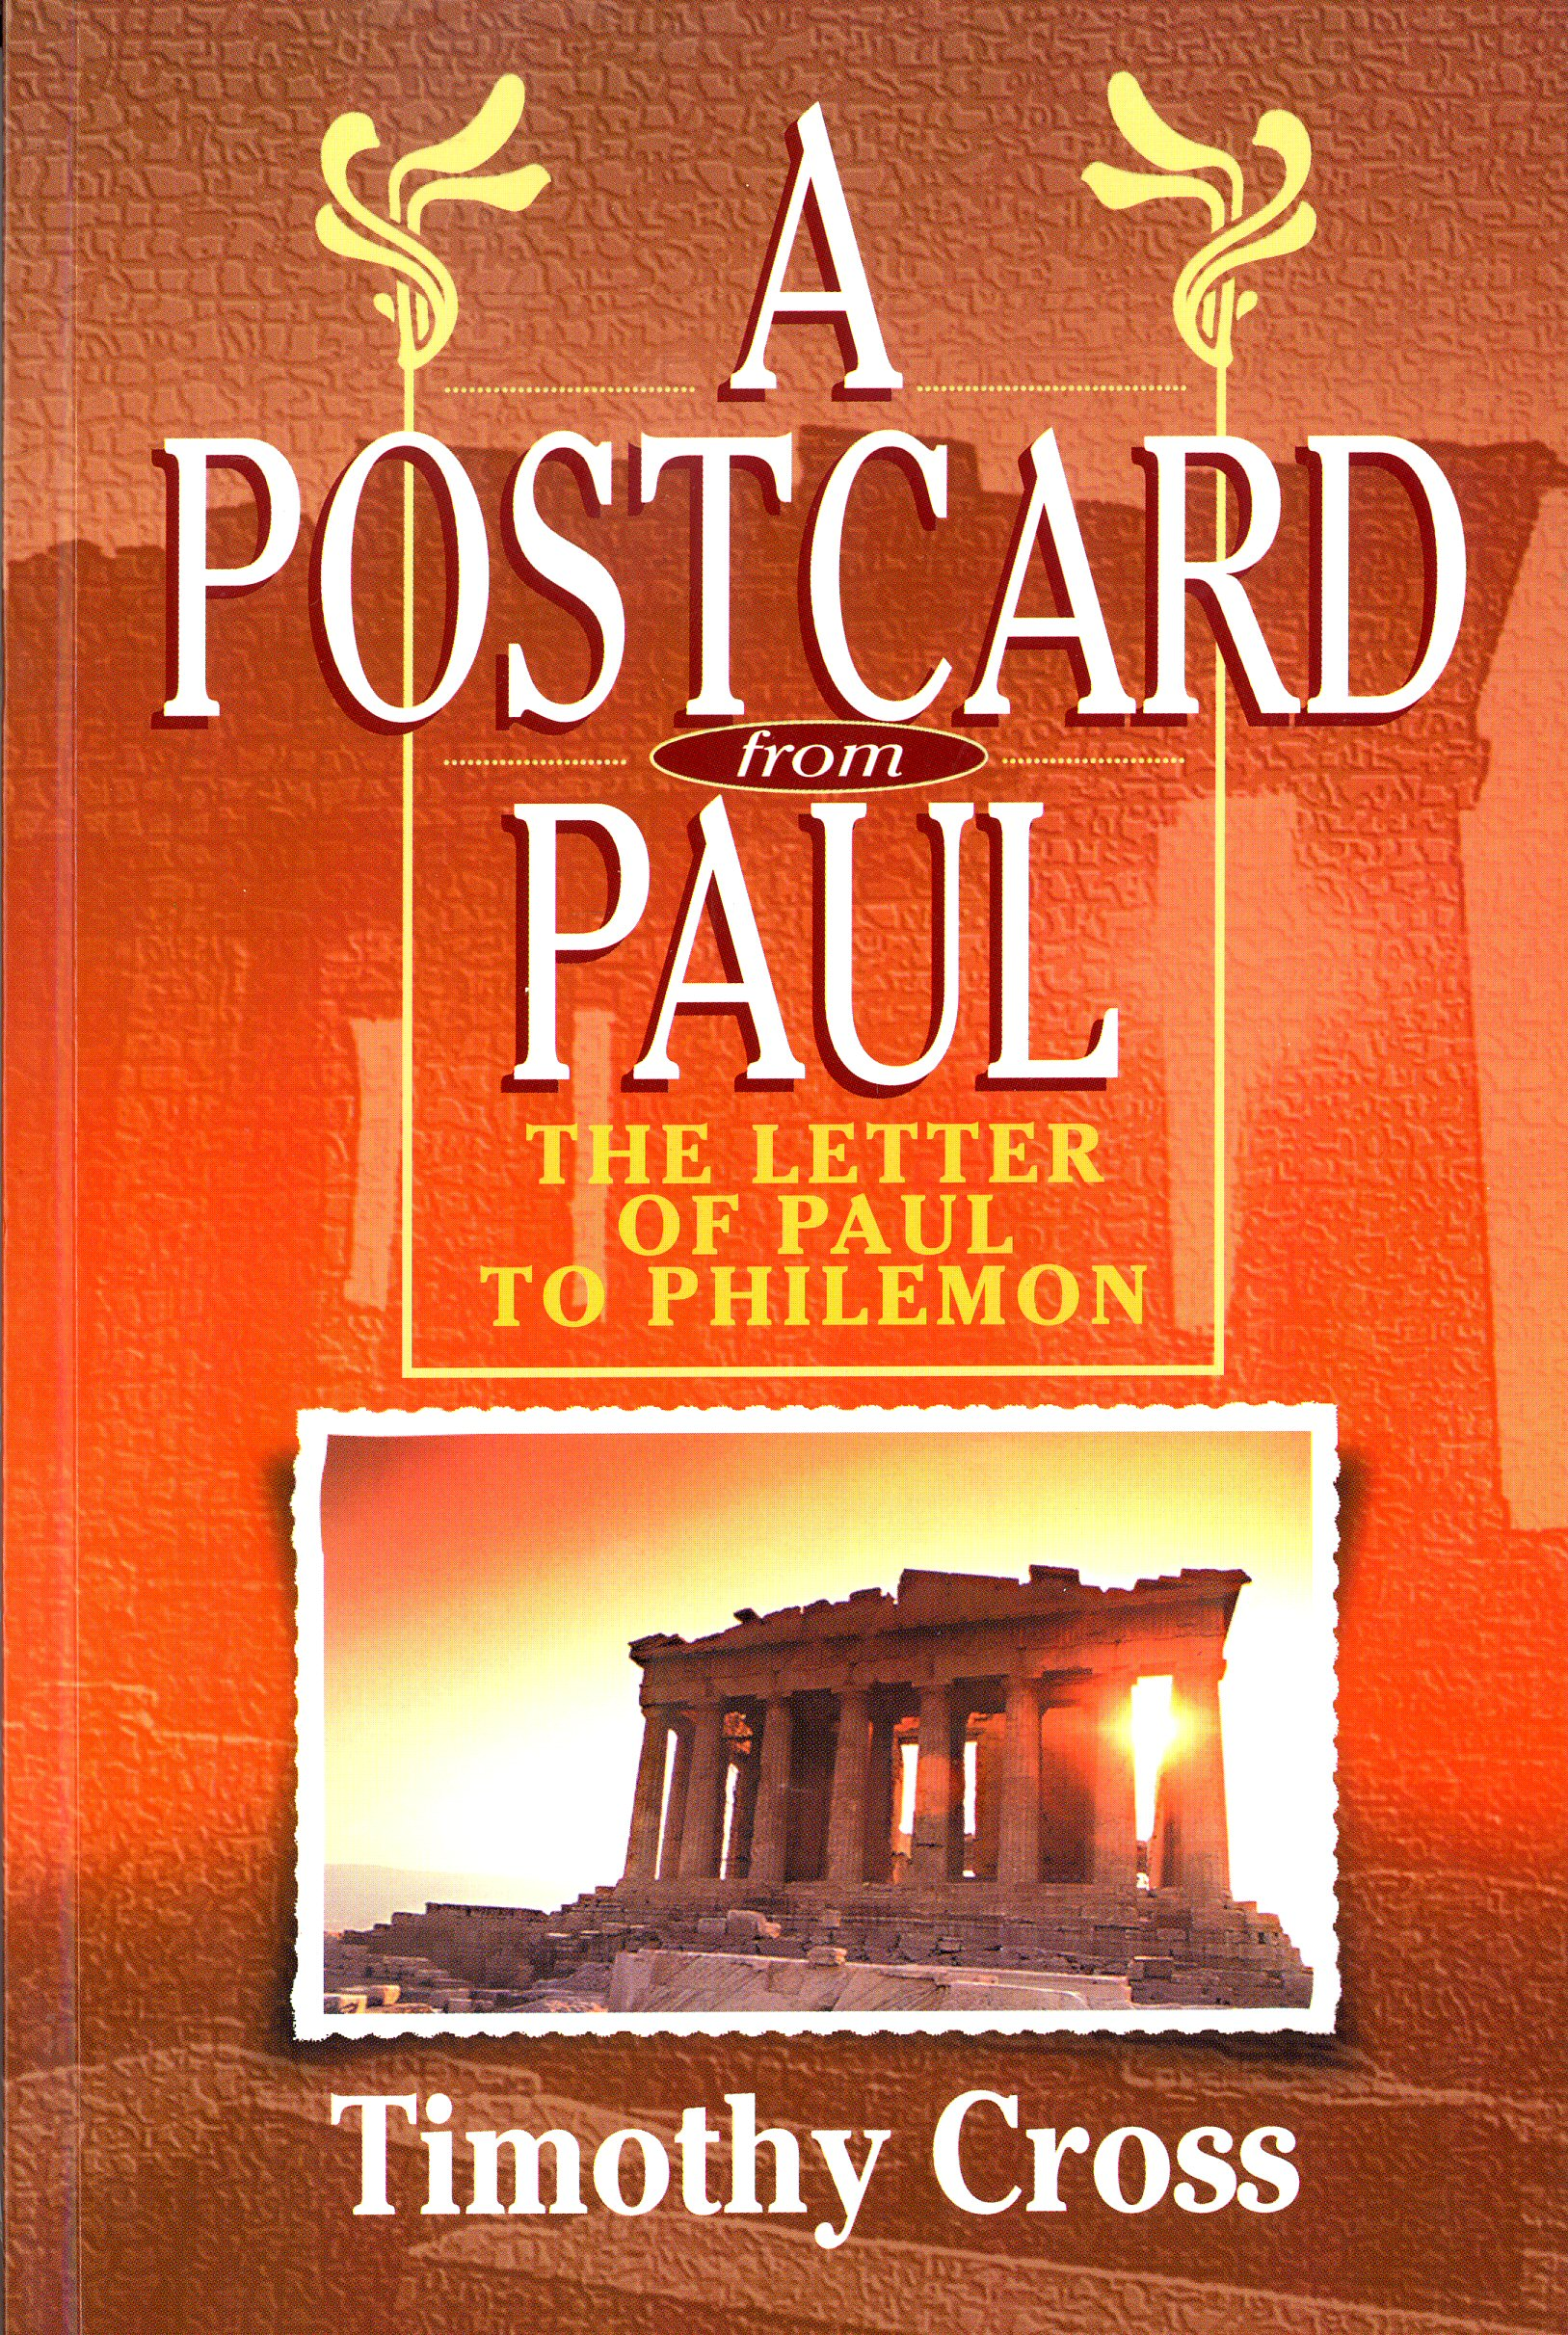 A Postcard from Paul: The Letter of Paul to Philemon